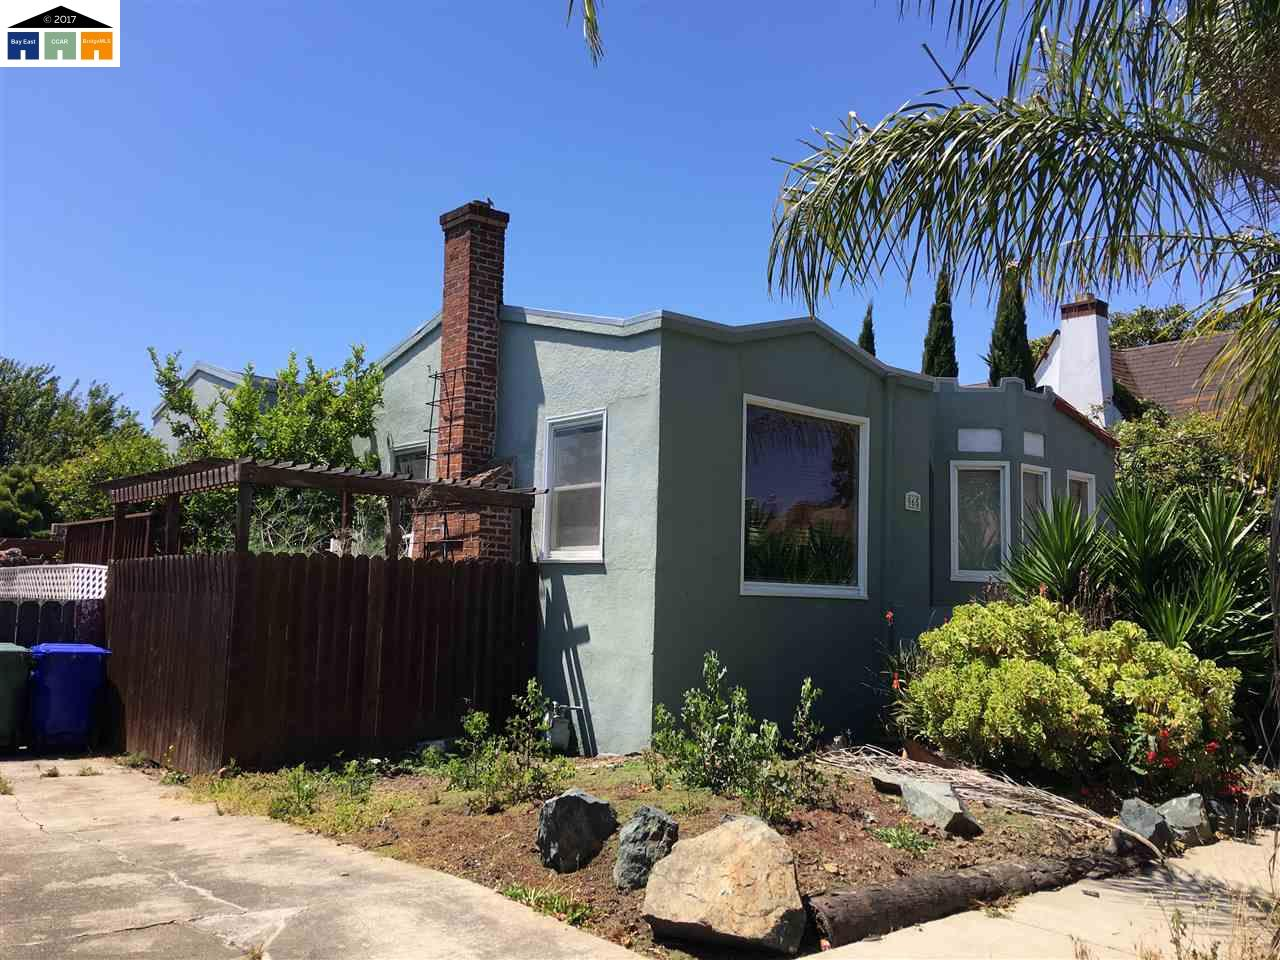 965 34TH ST, RICHMOND, CA 94805